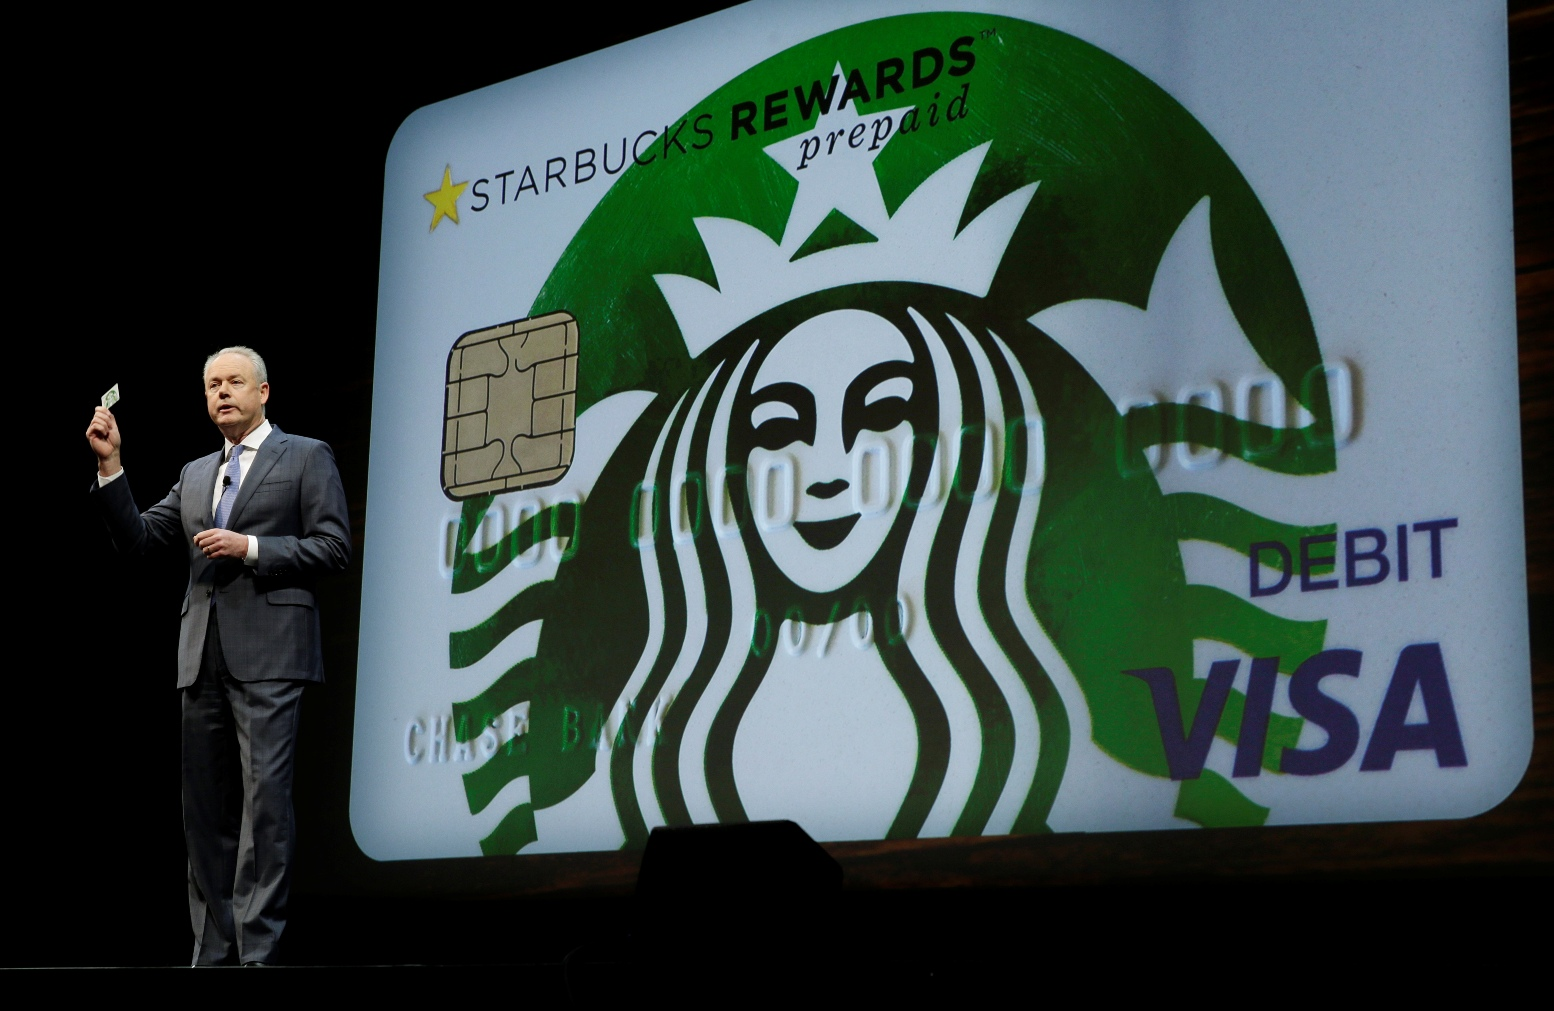 starbucks introduces debit card Starbucks former coo kevin johnson, now ceo, introduces the starbucks rewards prepaid visa debit card during the starbucks annual shareholders in 2016 in seattle growth of my starbucks rewards will be on analysts' mind as the company reports earnings thursday afternoon.